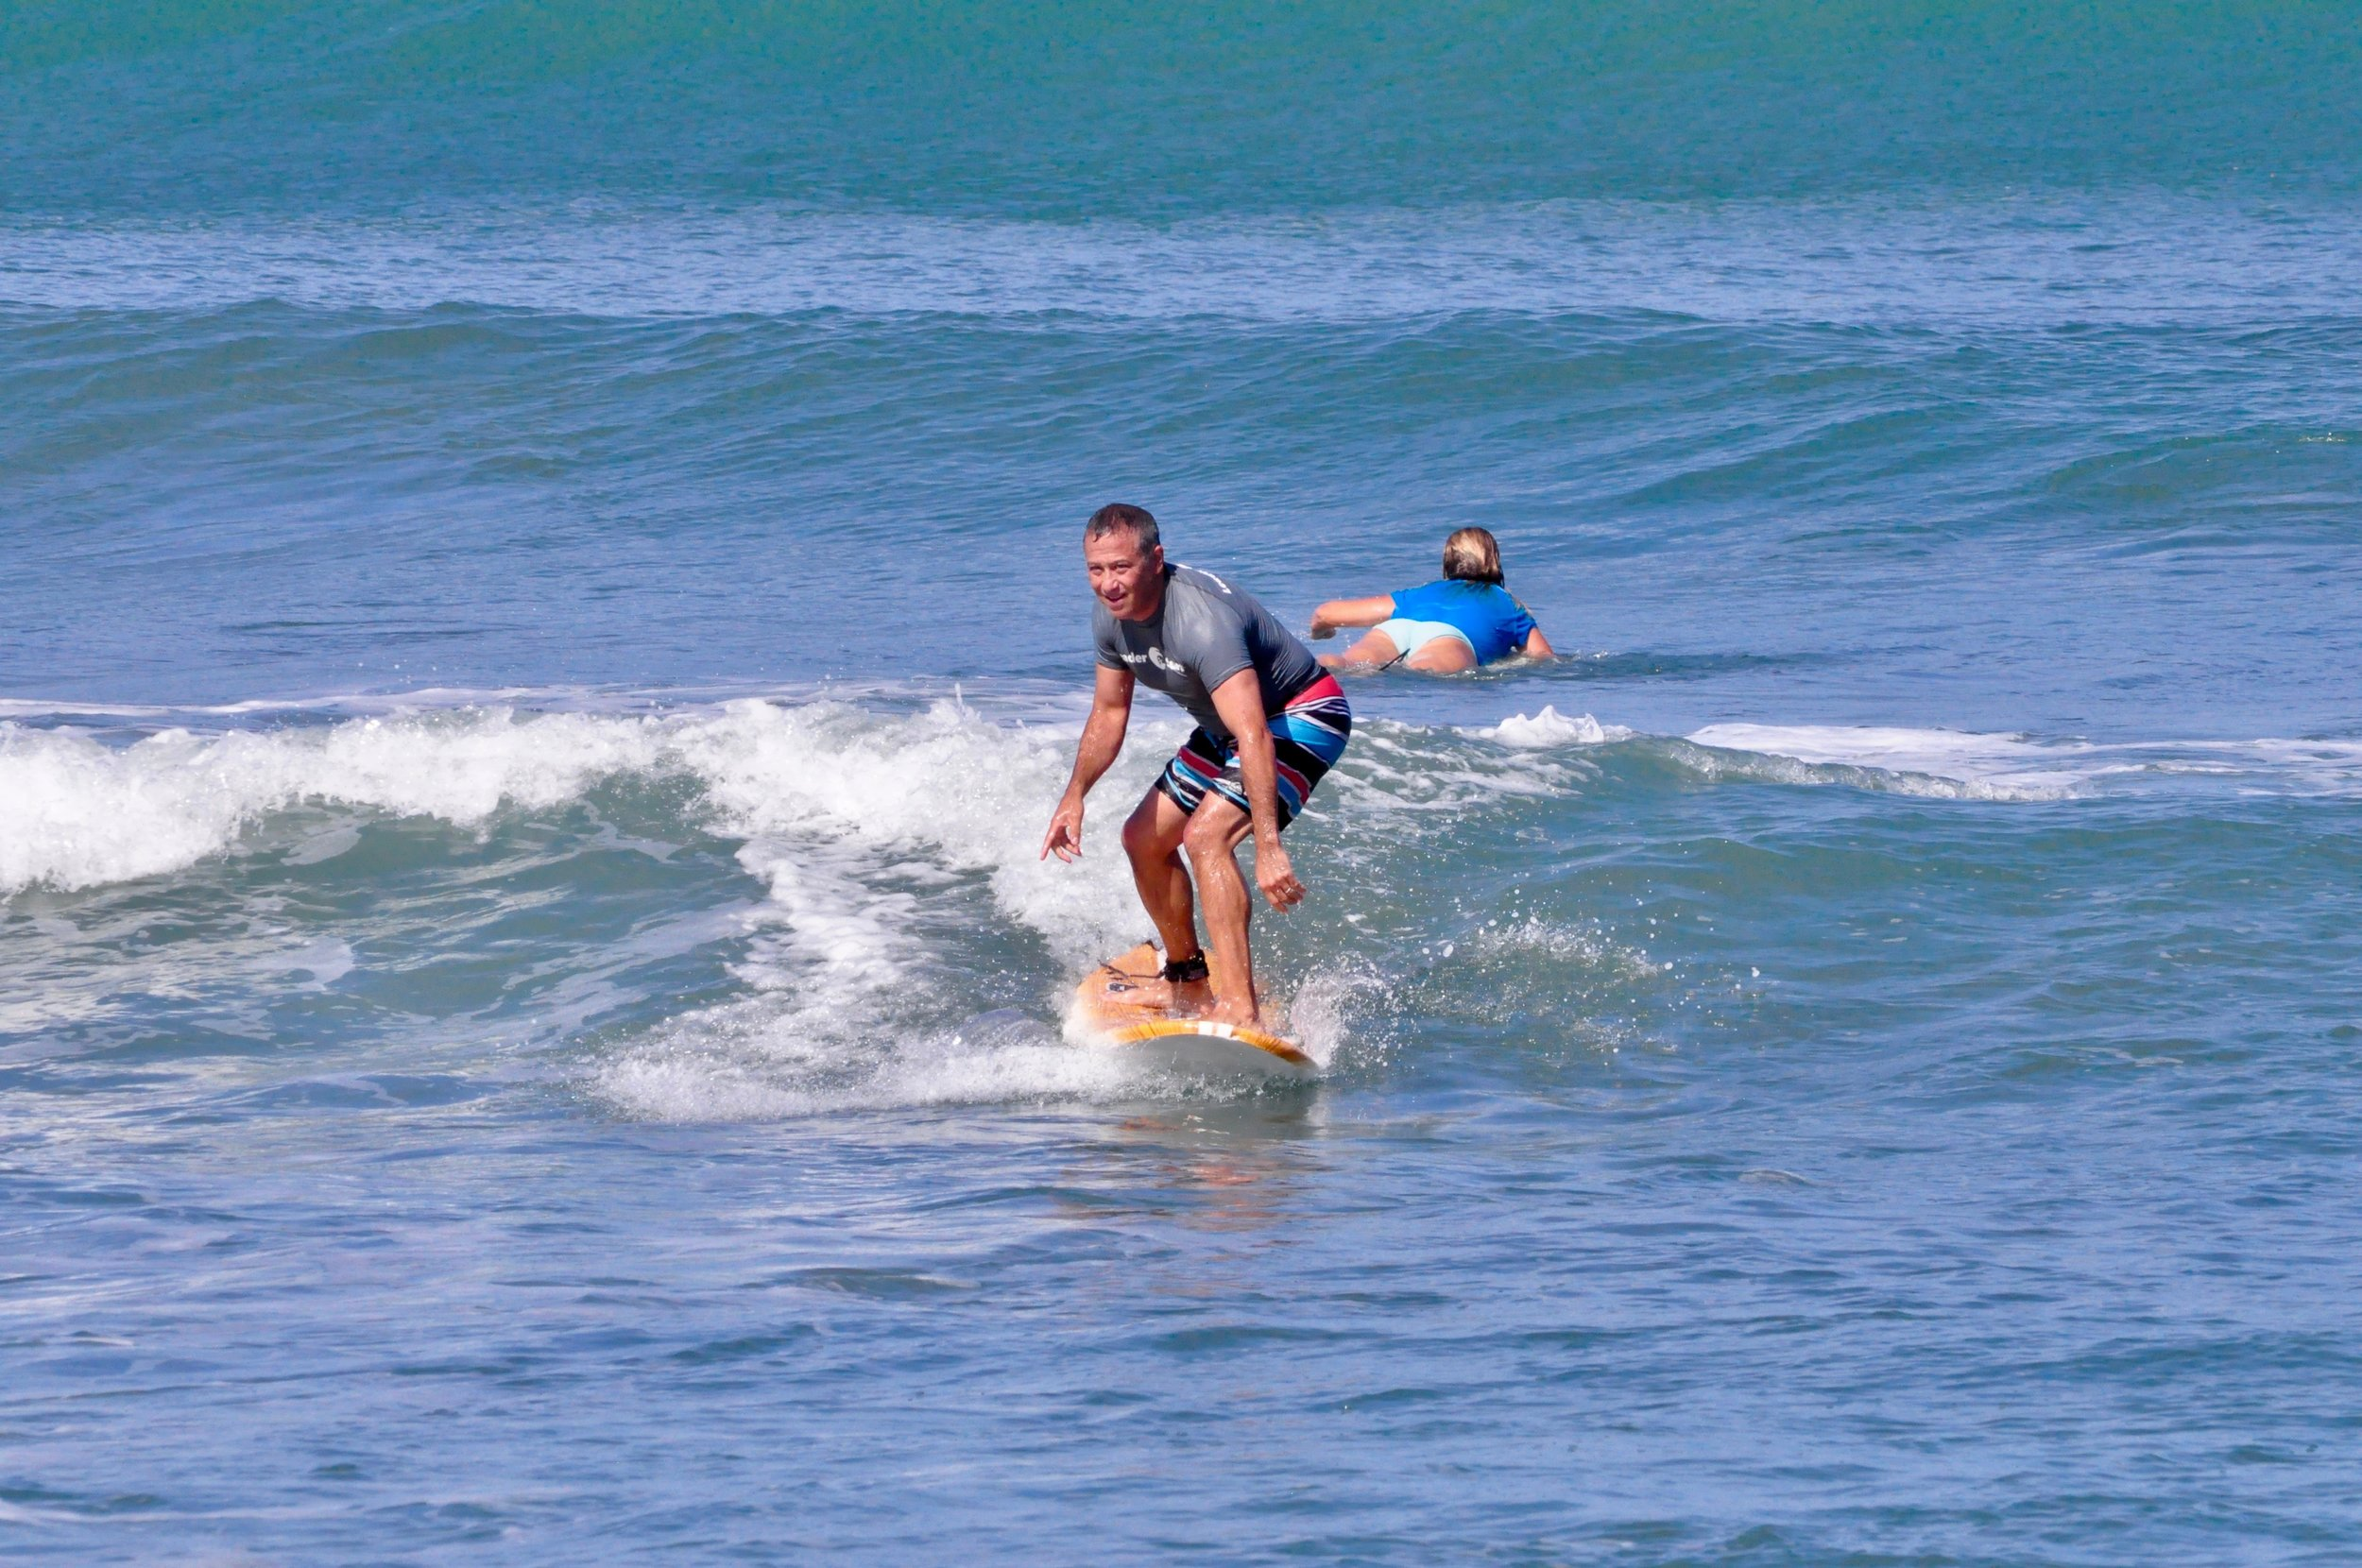 Jack surfing a wave